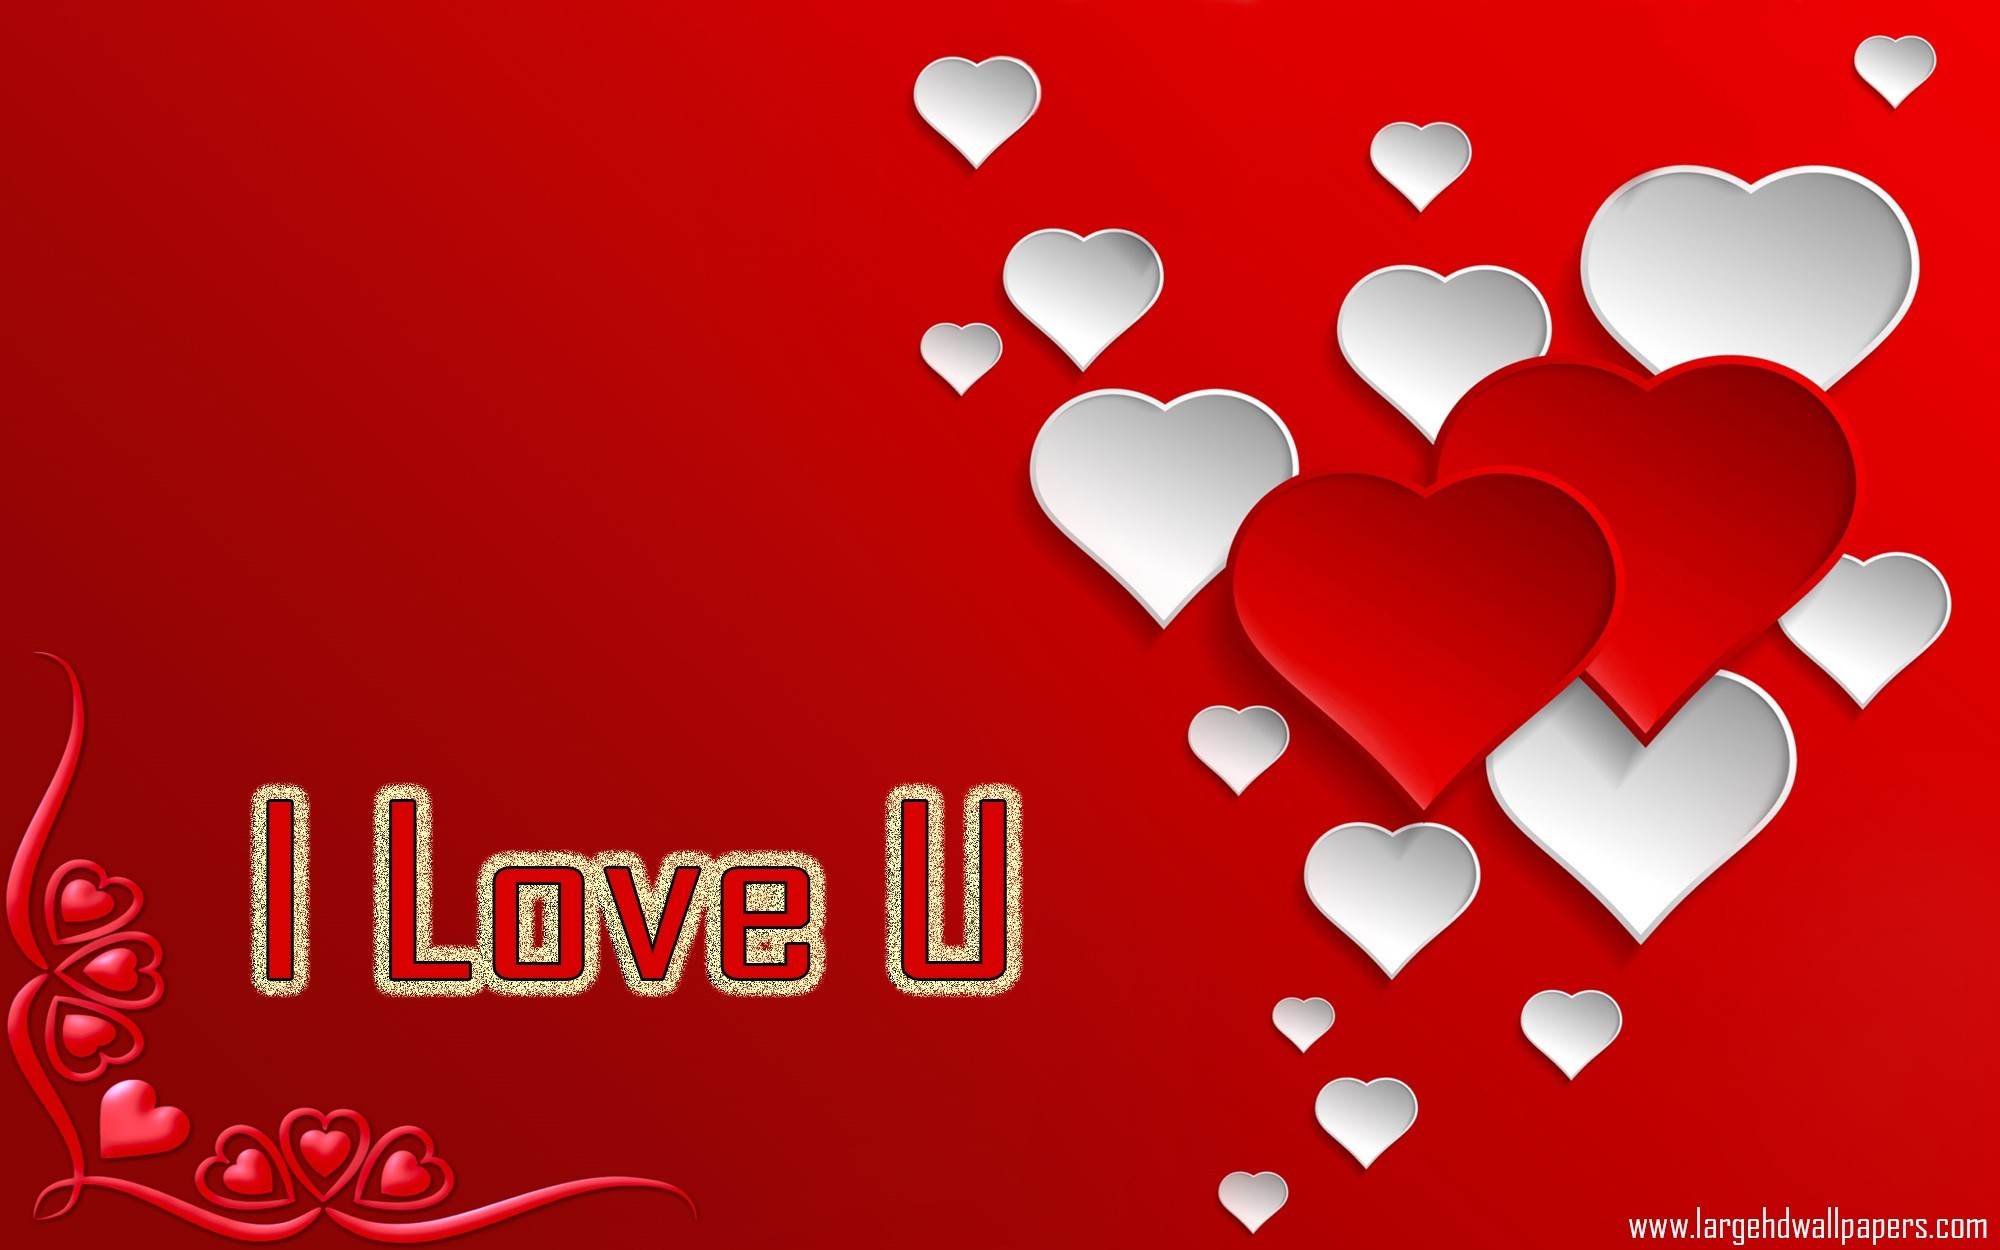 Love Wallpaper U And Me : I Love U Images Wallpapers ??